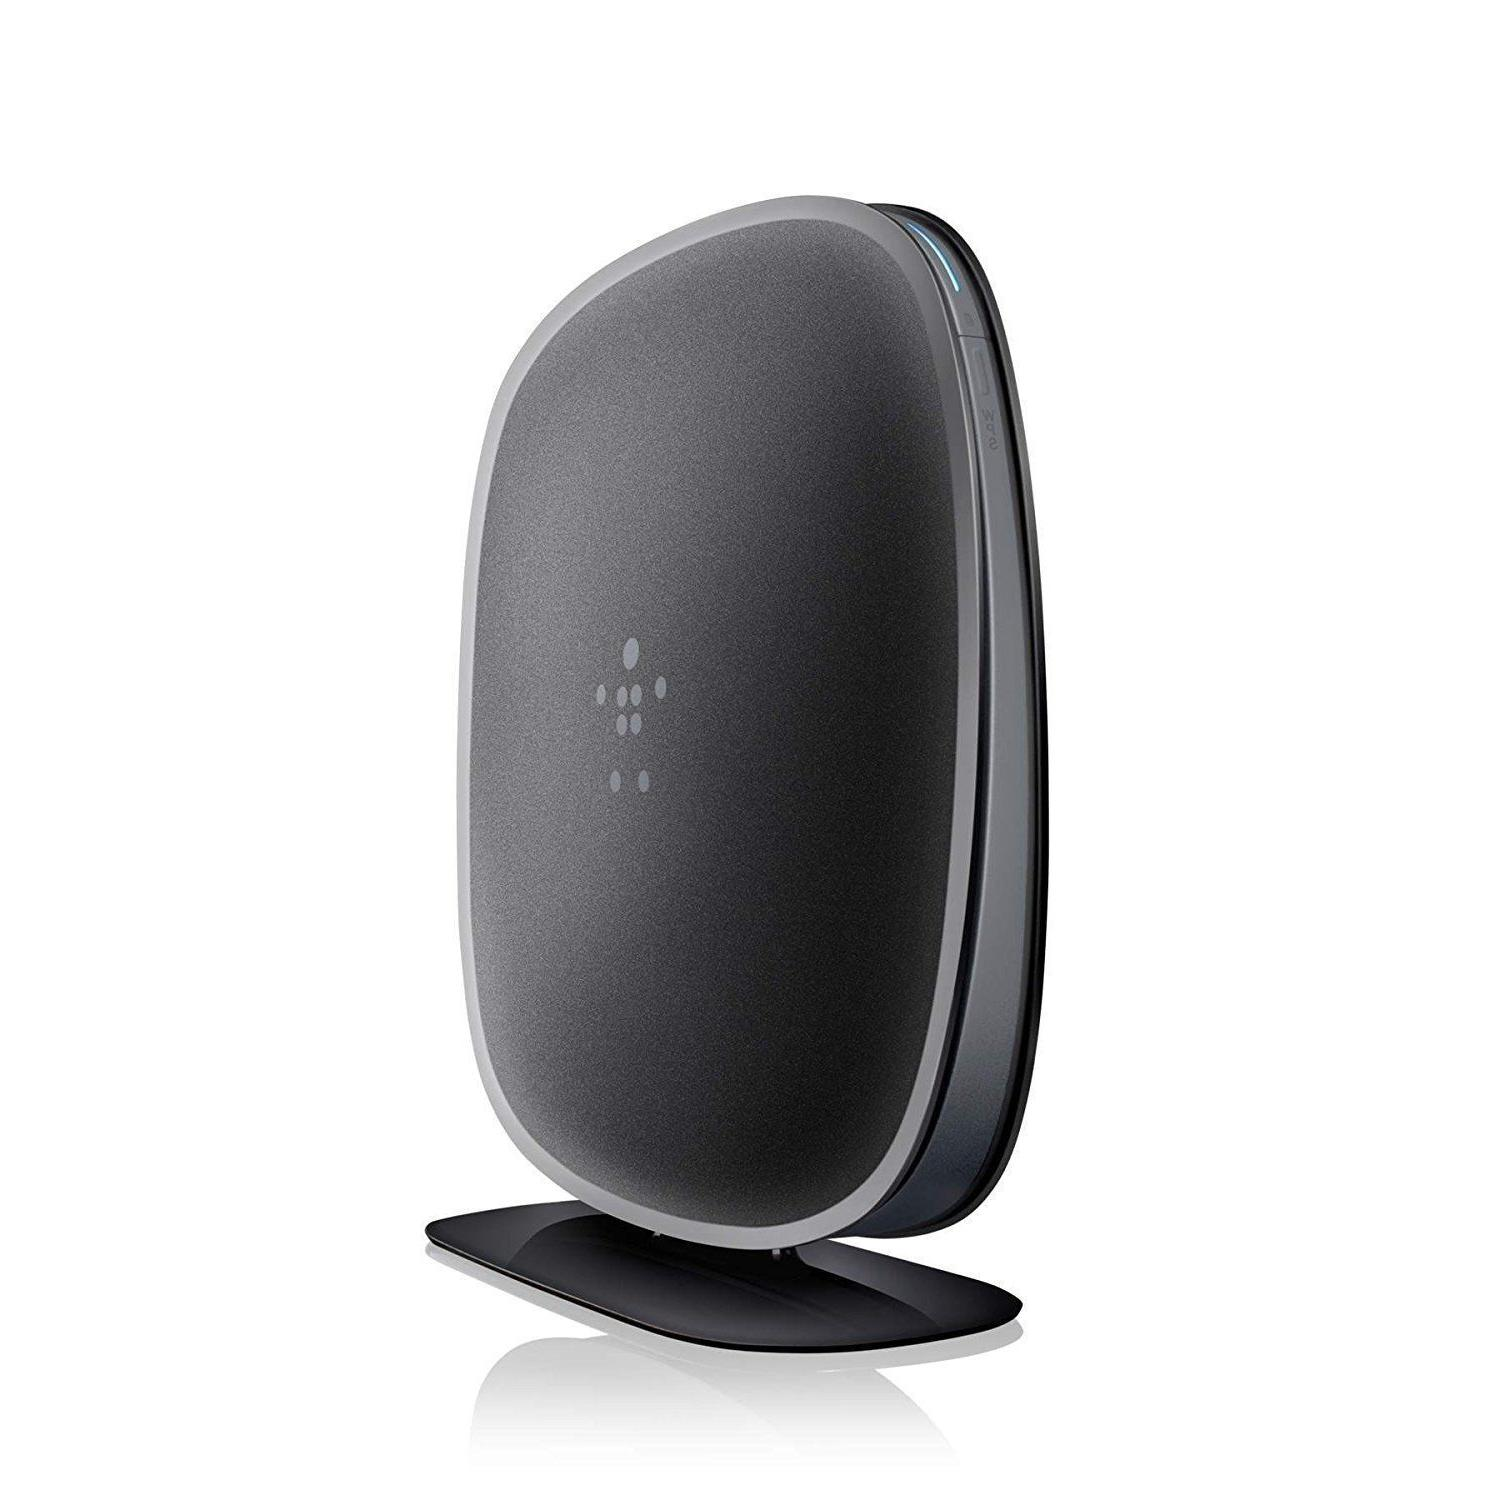 new n450 db dual band n wifi